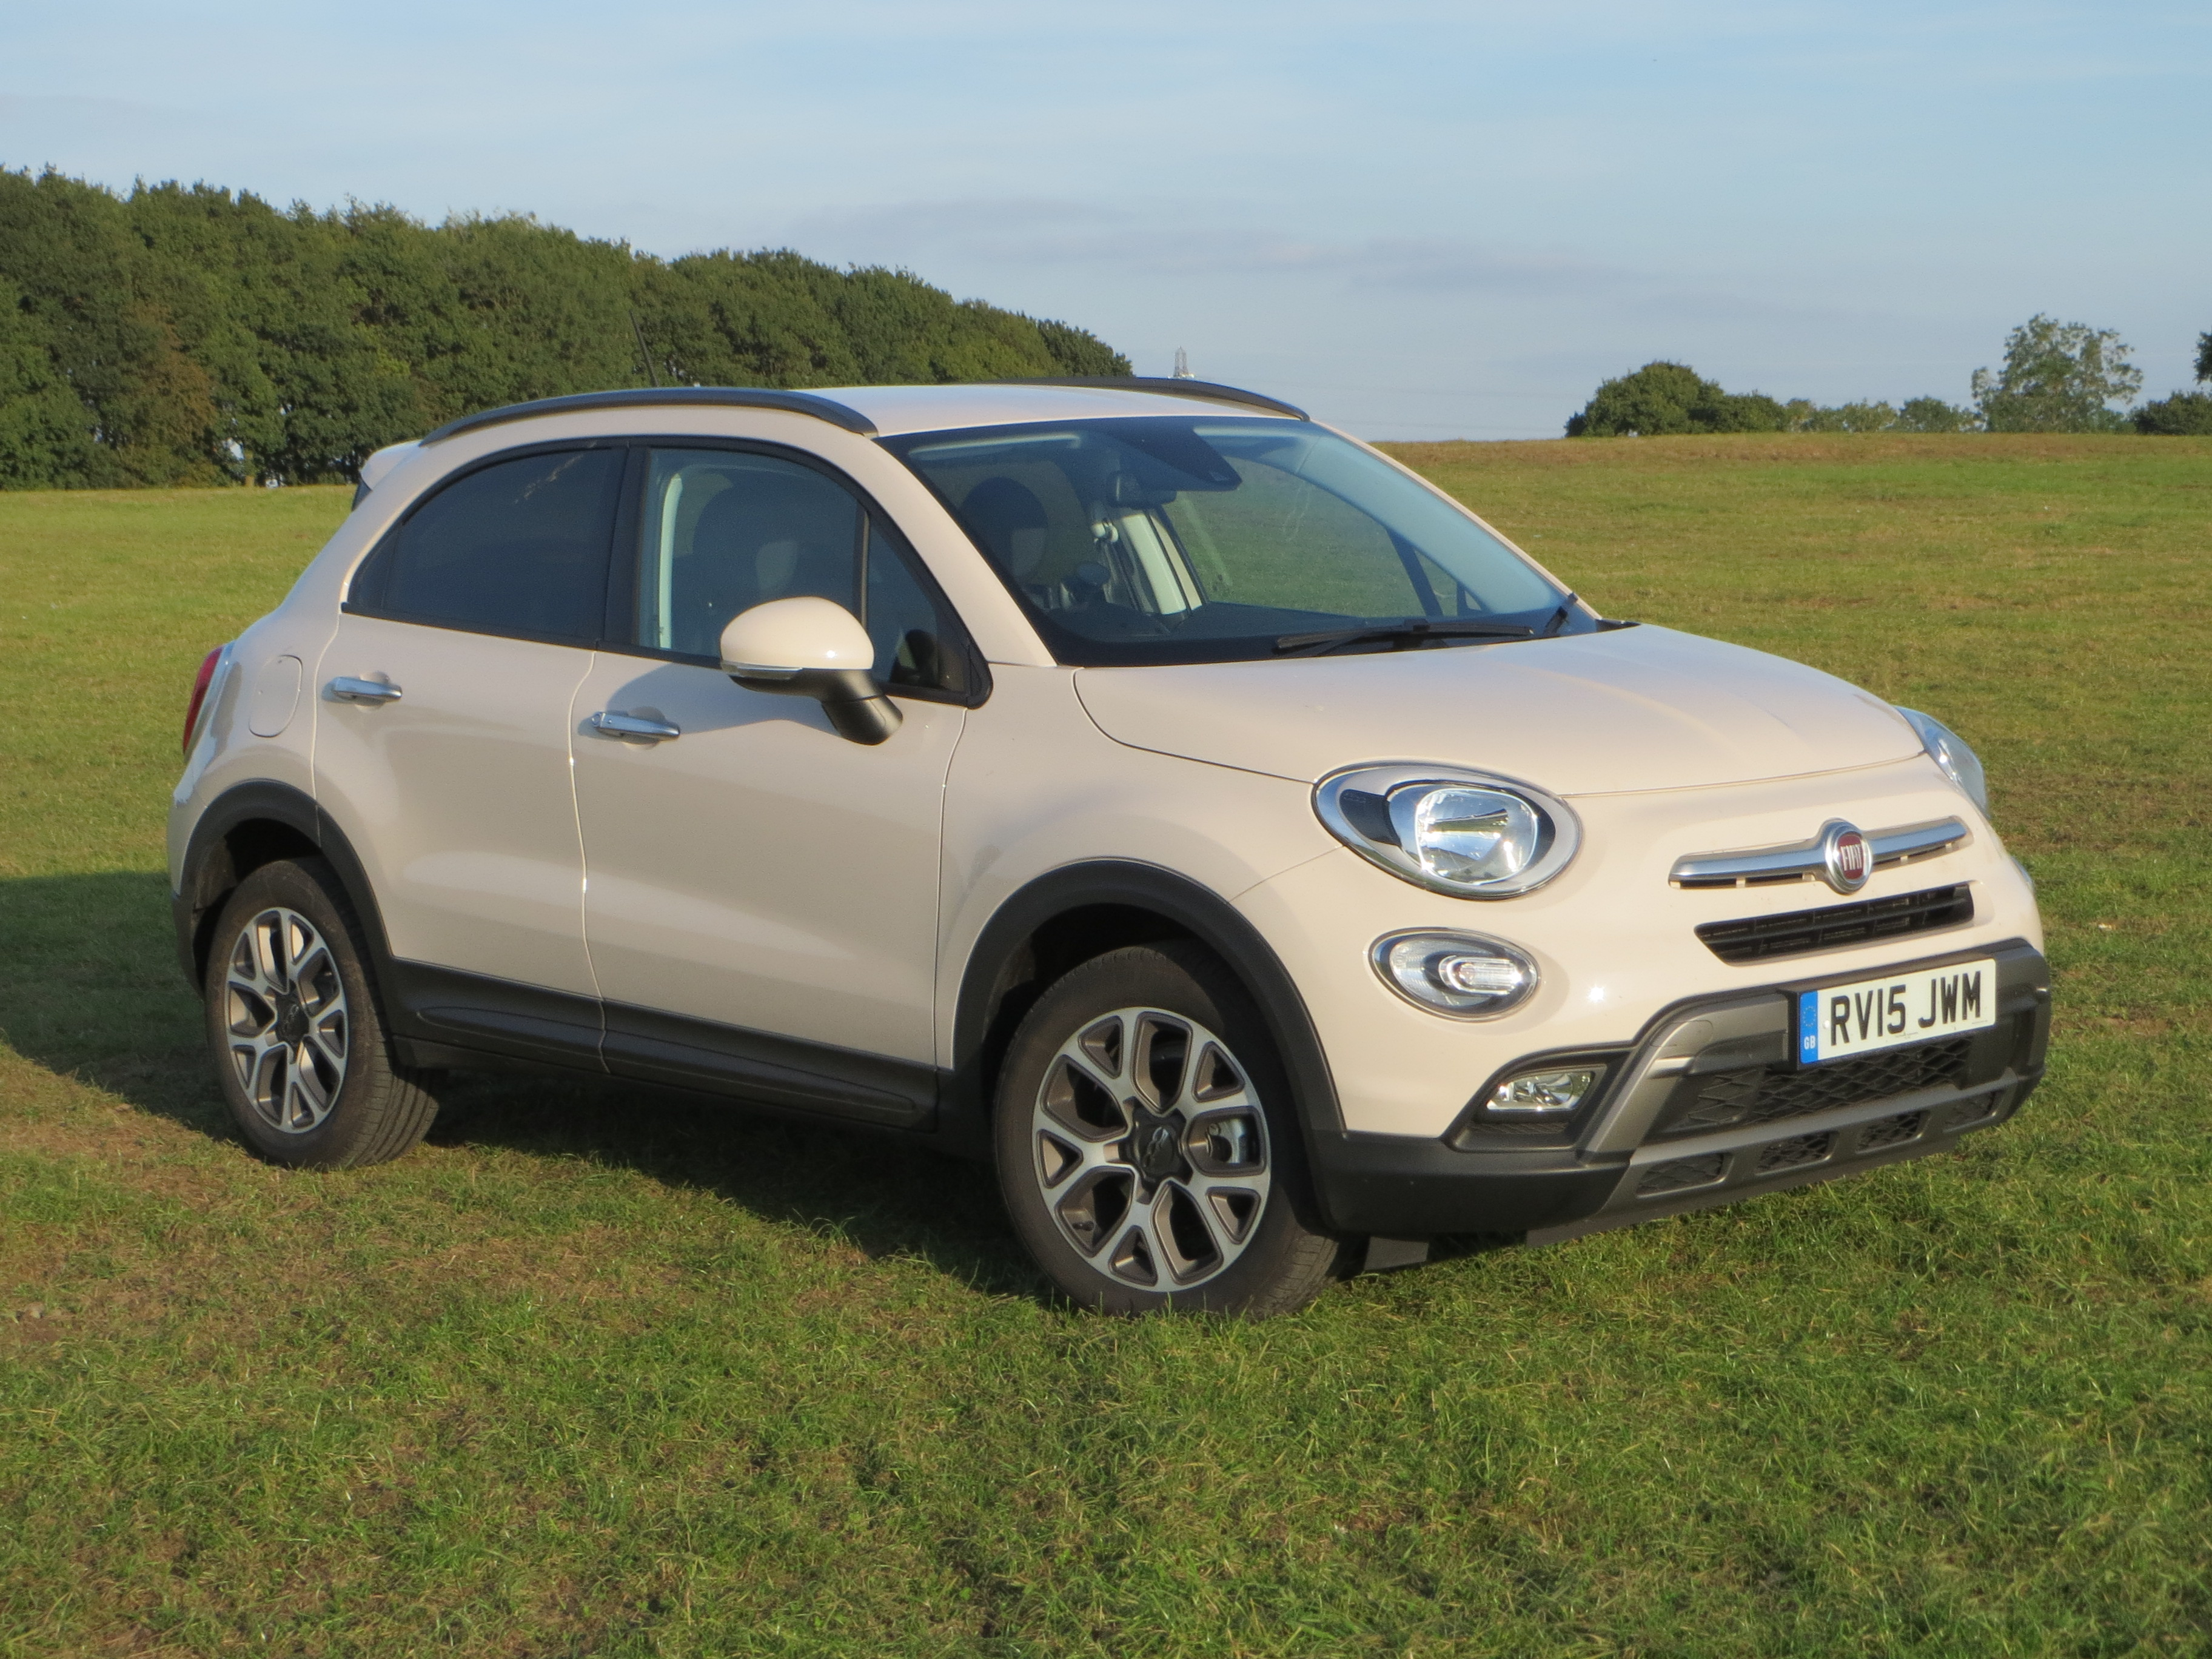 fiat 500x 1 6 multijet 120hp cross road test report and review. Black Bedroom Furniture Sets. Home Design Ideas